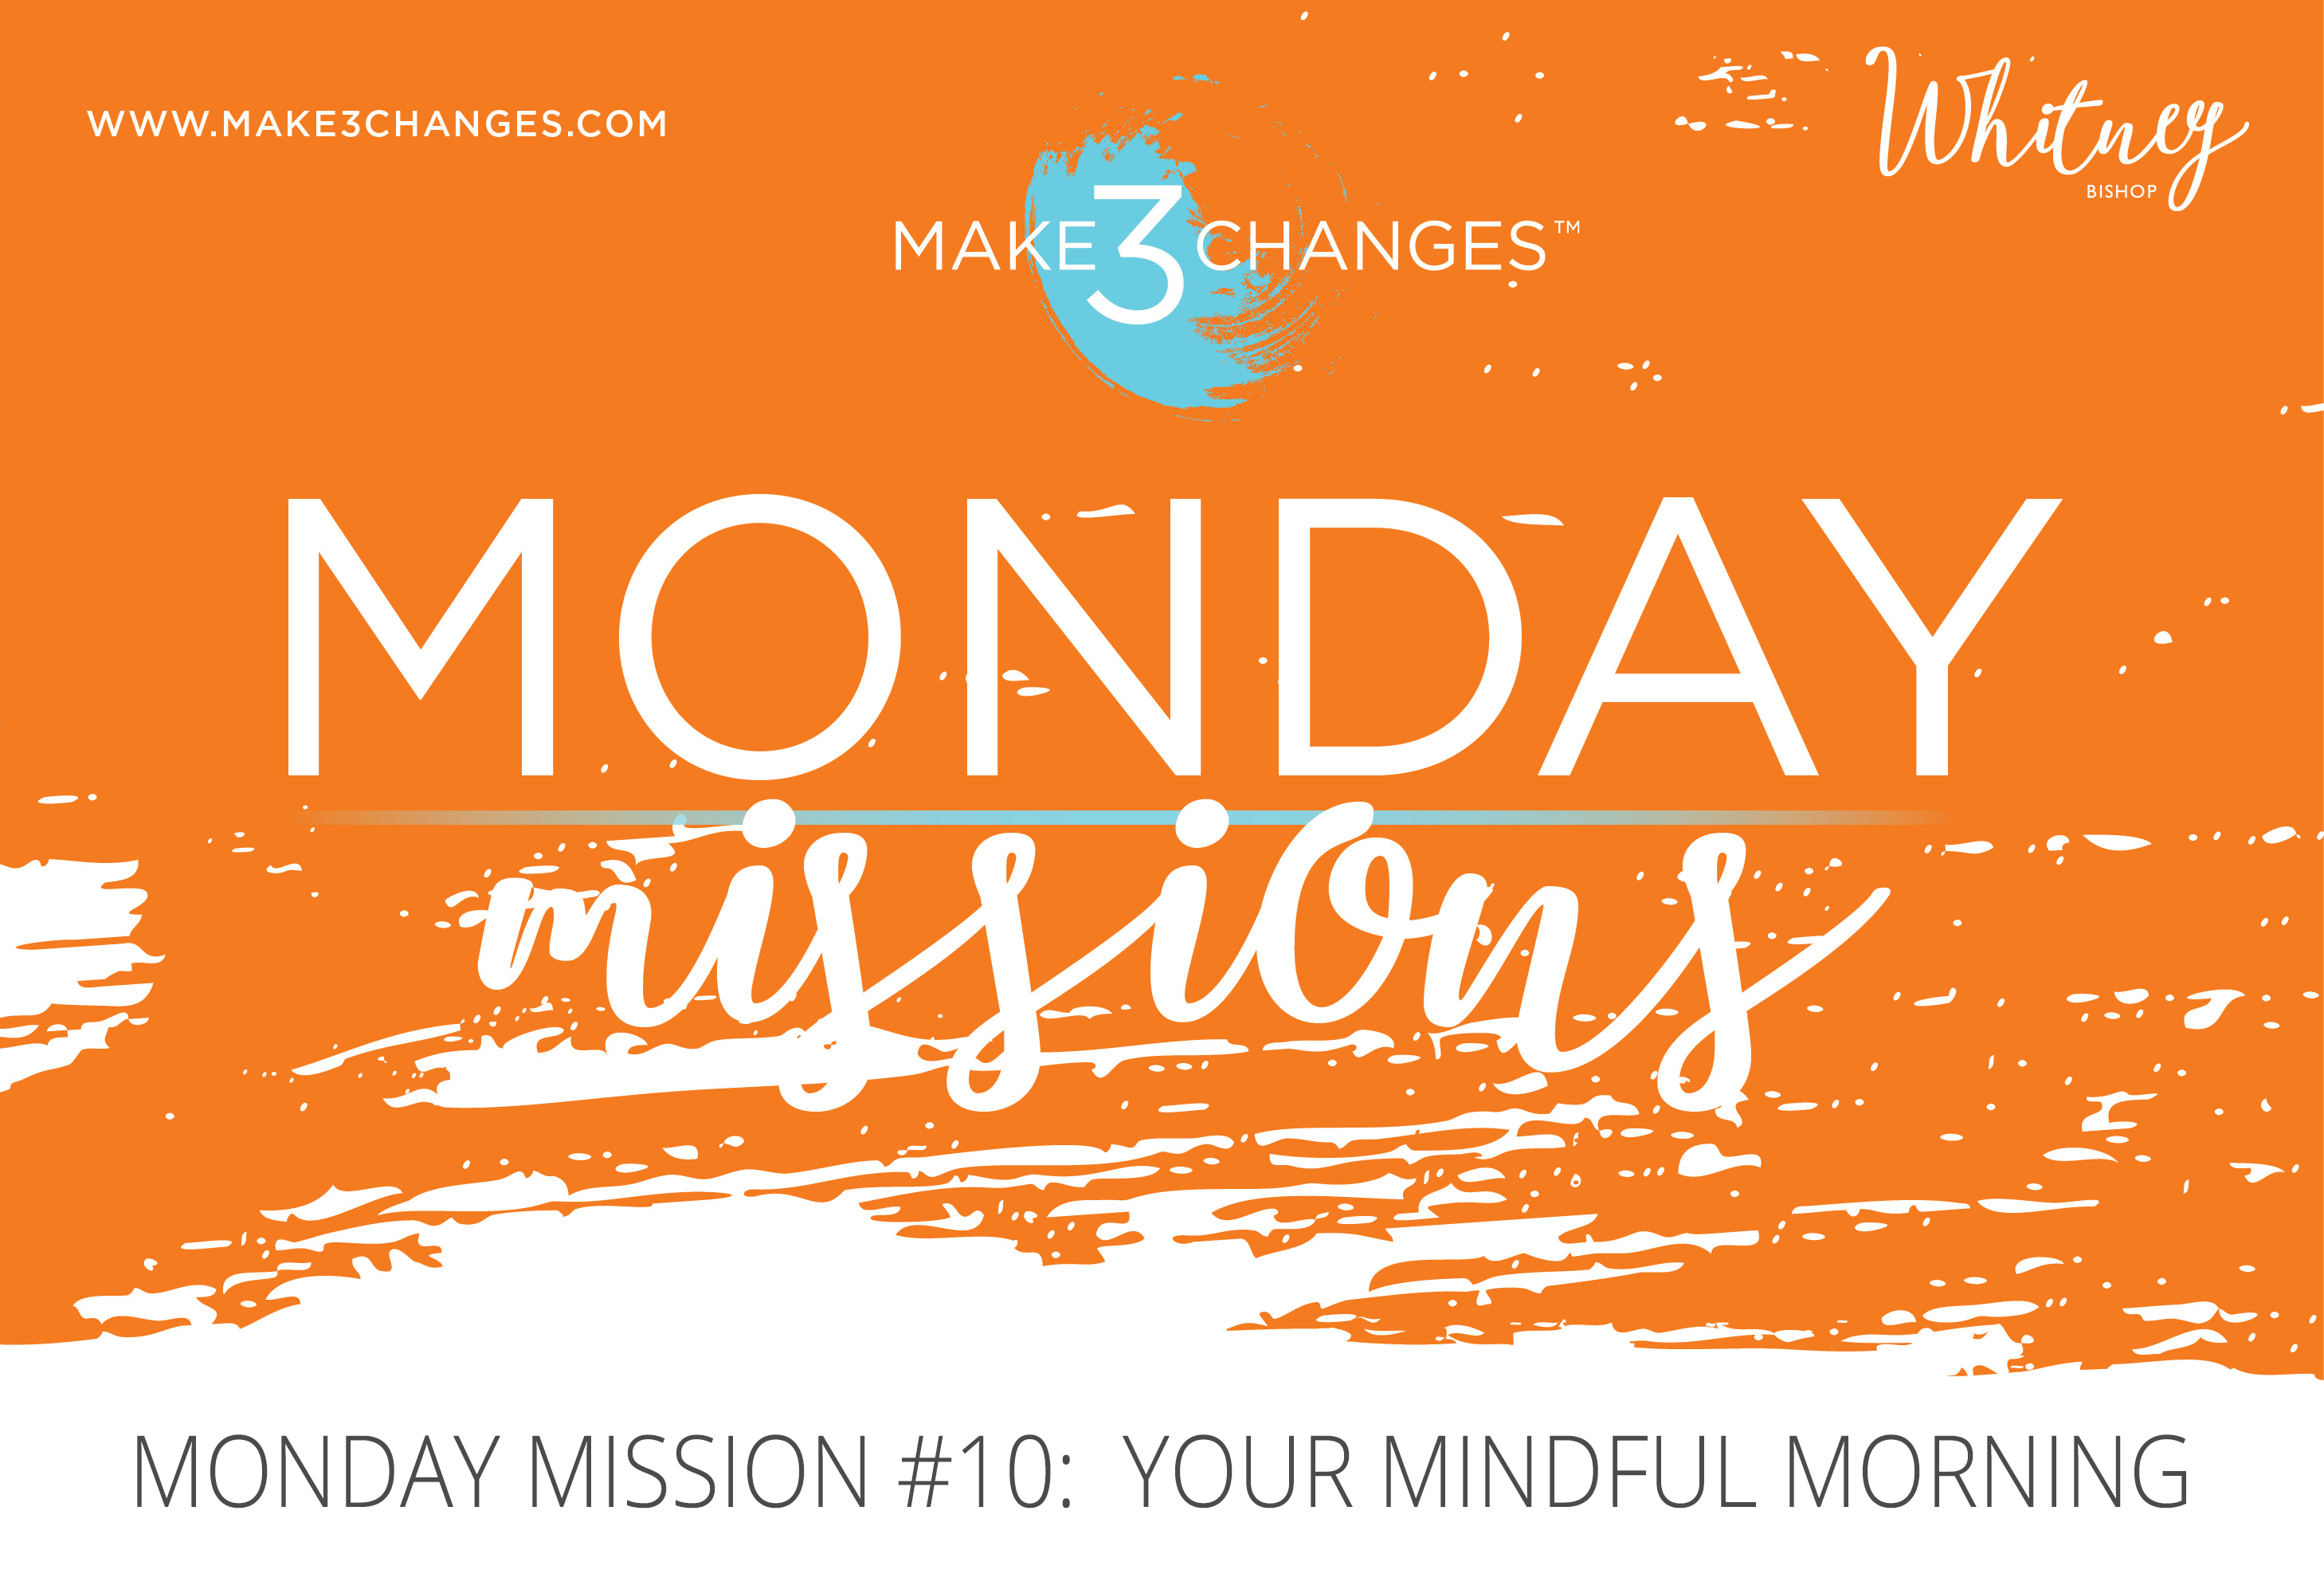 Monday Mission #10: Your Mindful Morning